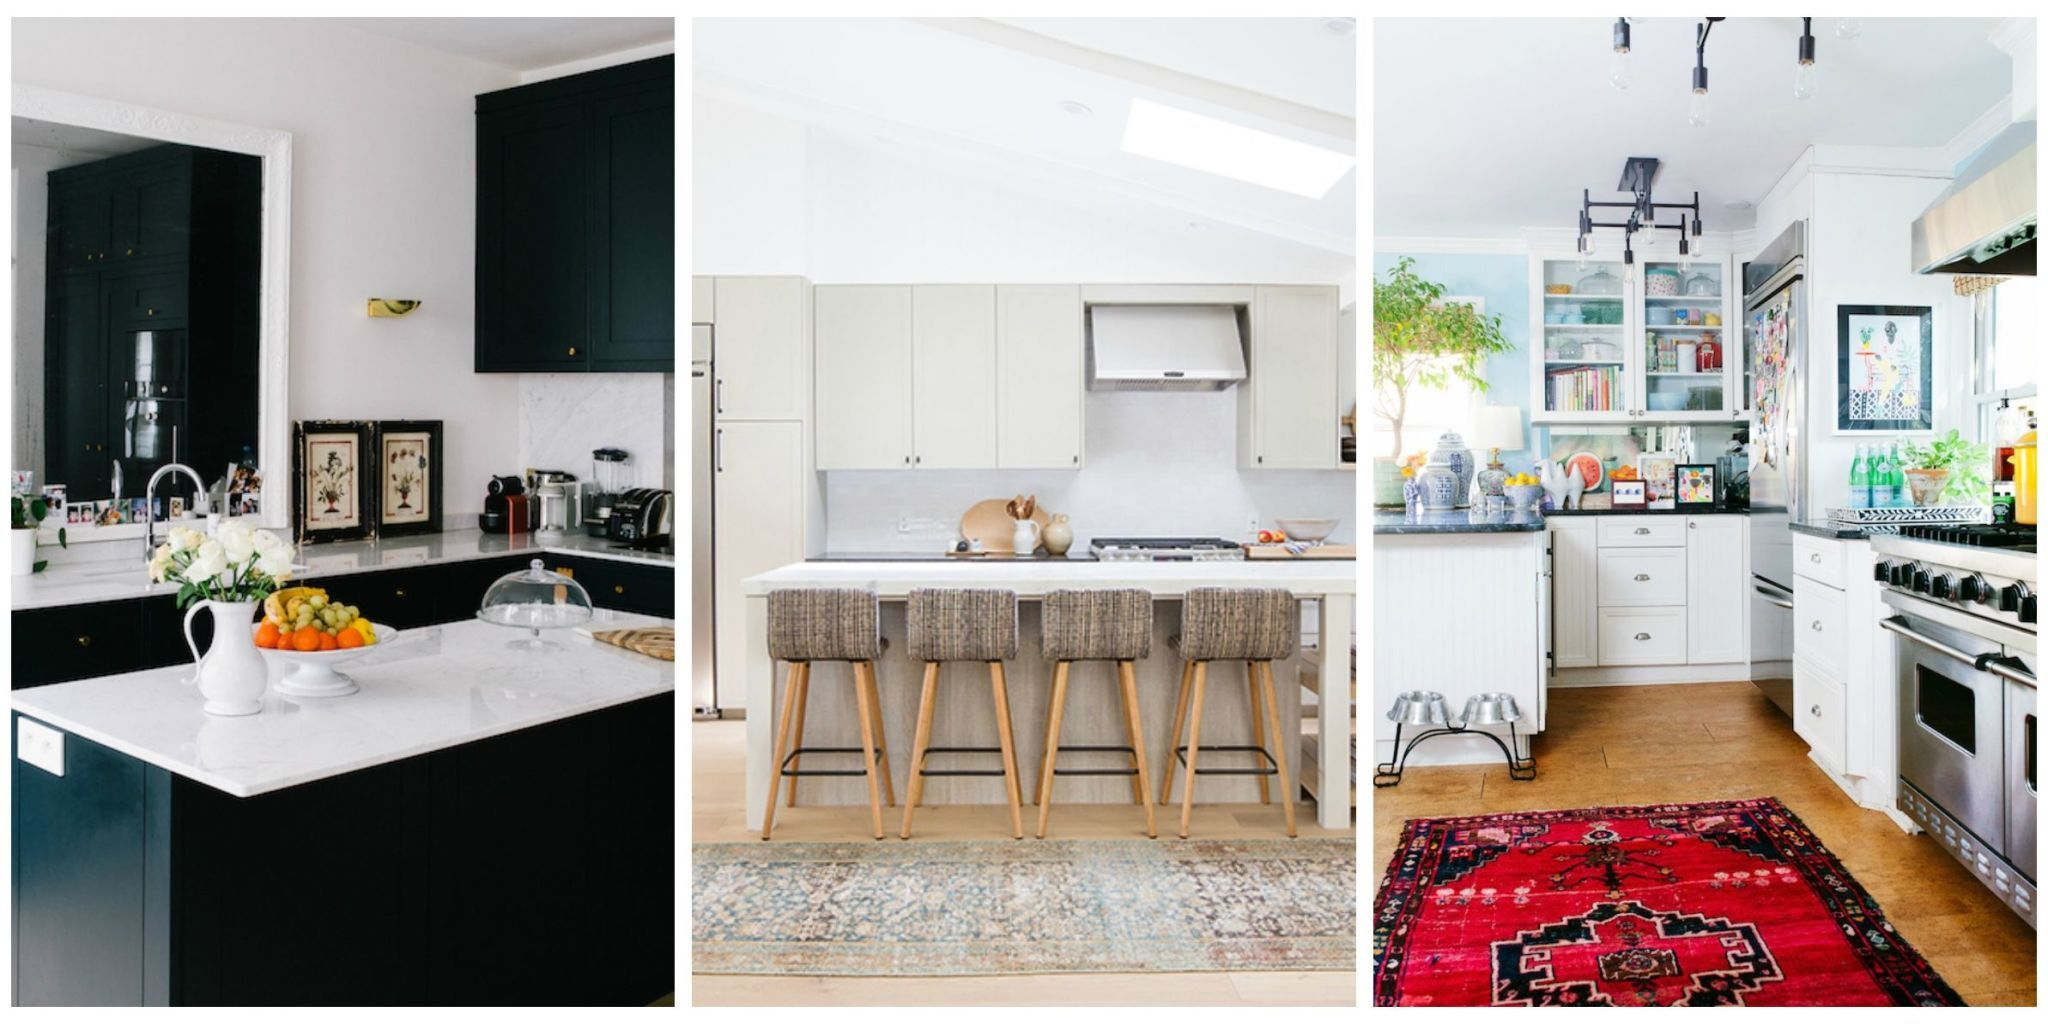 If You Could Makeover Any Room In The House, Itu0027d Be The Kitchen Right?  Right. Check Out These Jaw Dropping Spaces Youu0027d Give Your Pinky Toe To  Have In Your ...